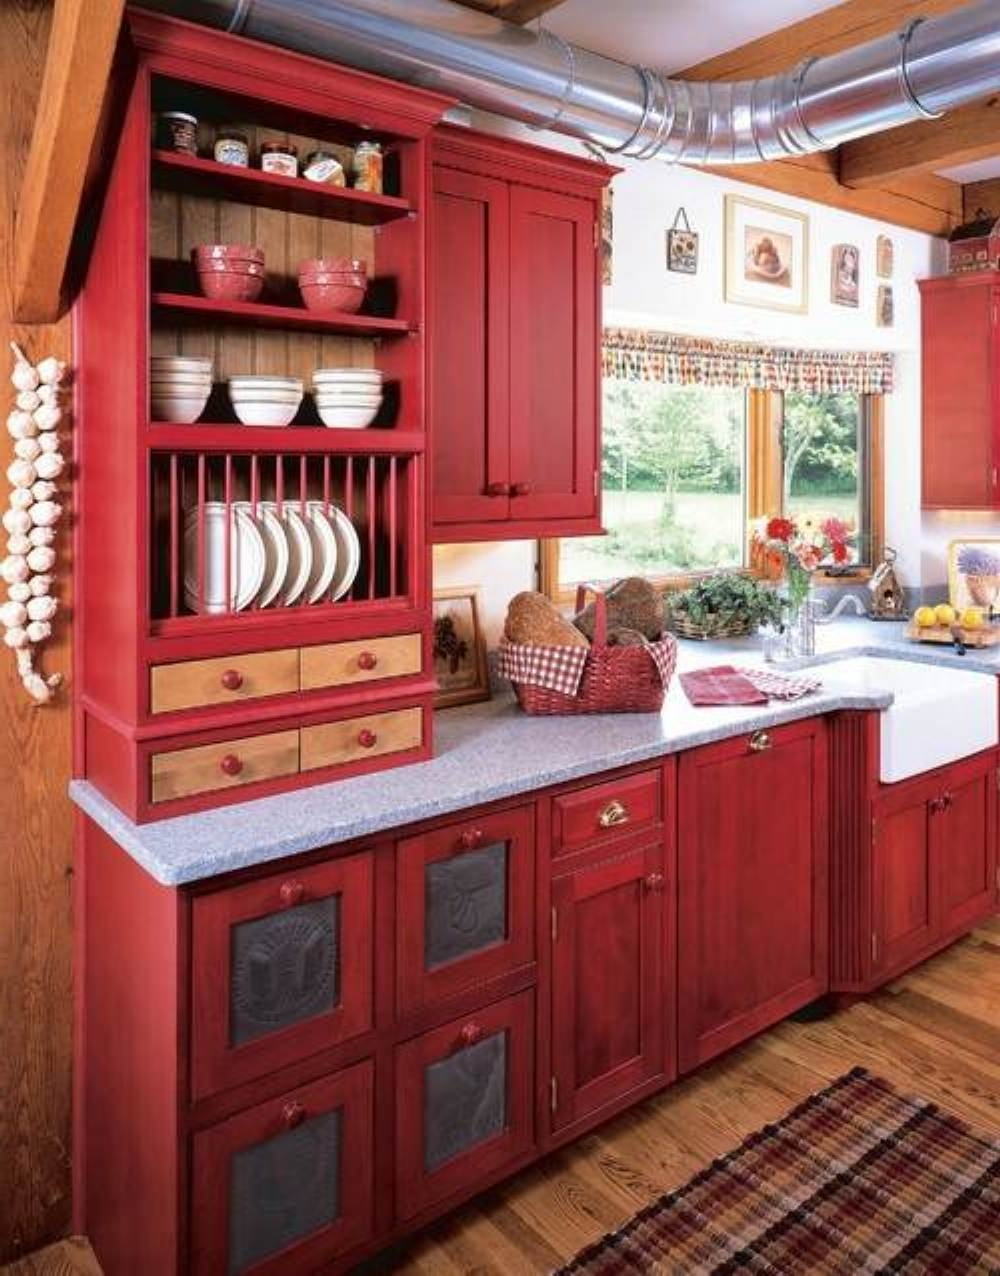 Permalink to Red Kitchen Cabinets Ideas